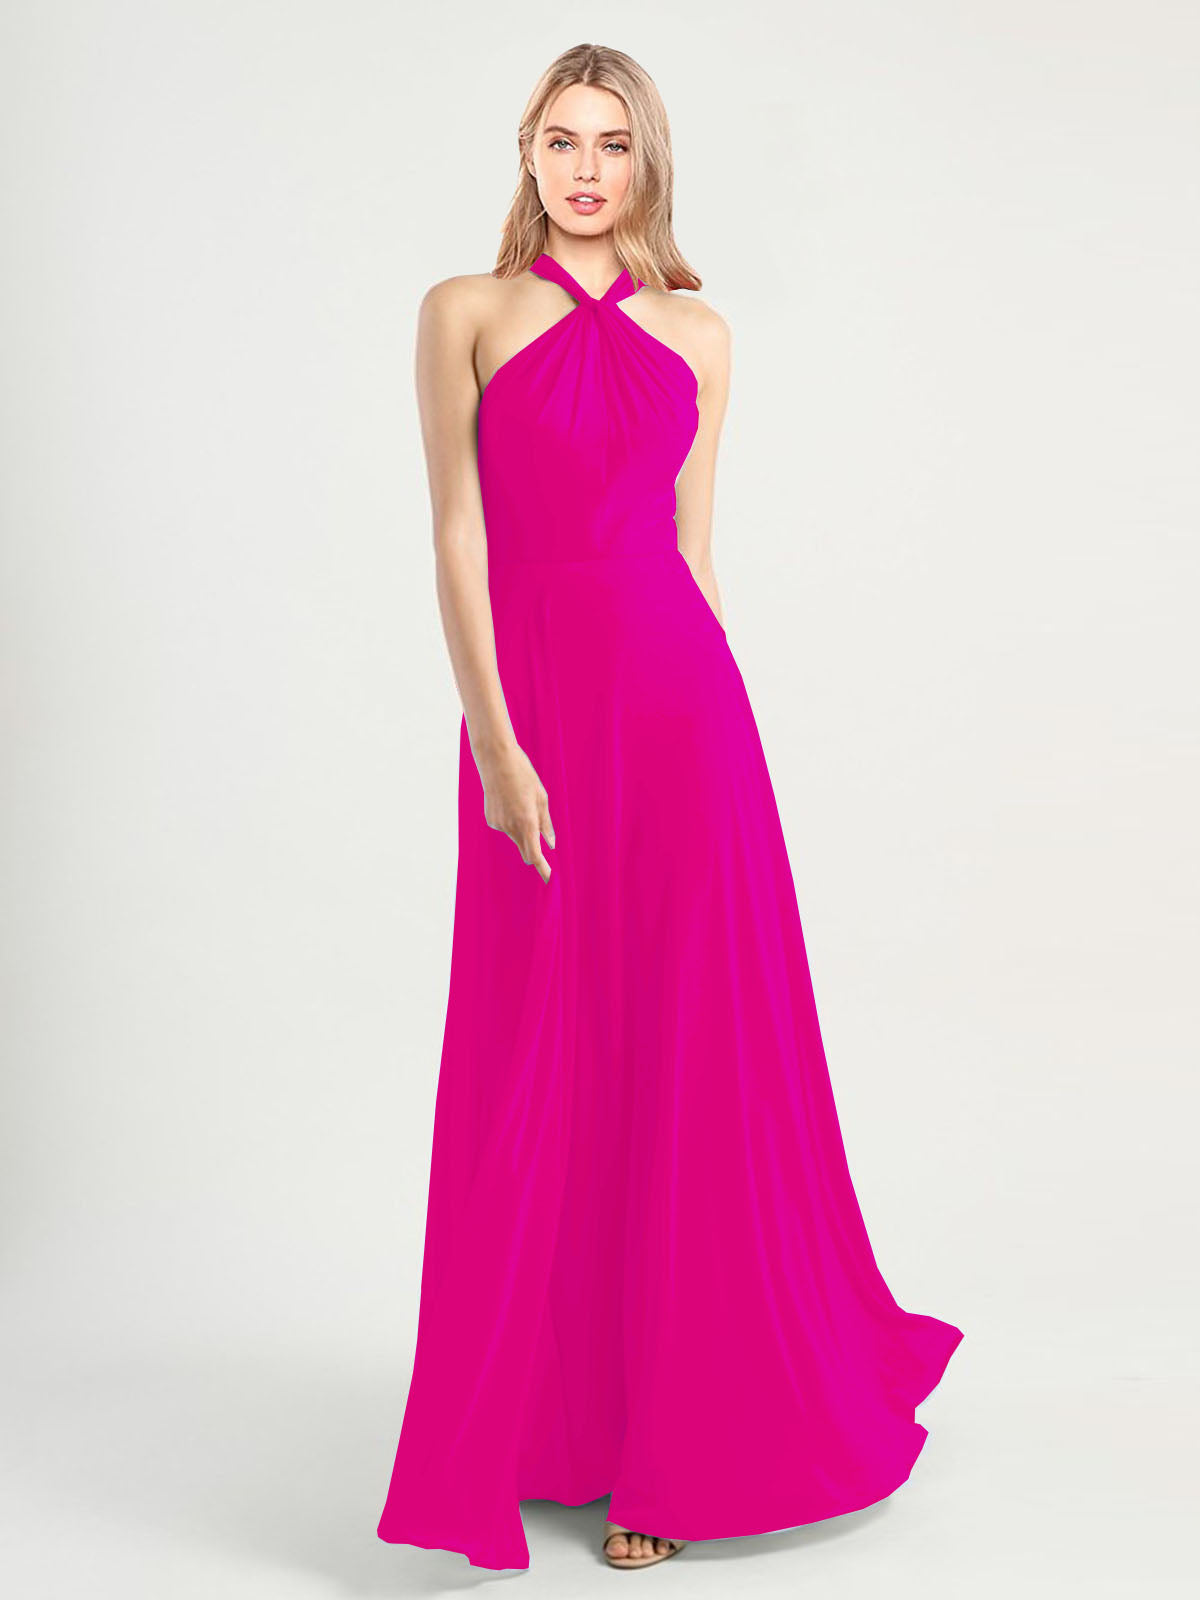 Long A-Line High Neck, Halter Sleeveless Fuchsia Chiffon Bridesmaid Dress Yoli